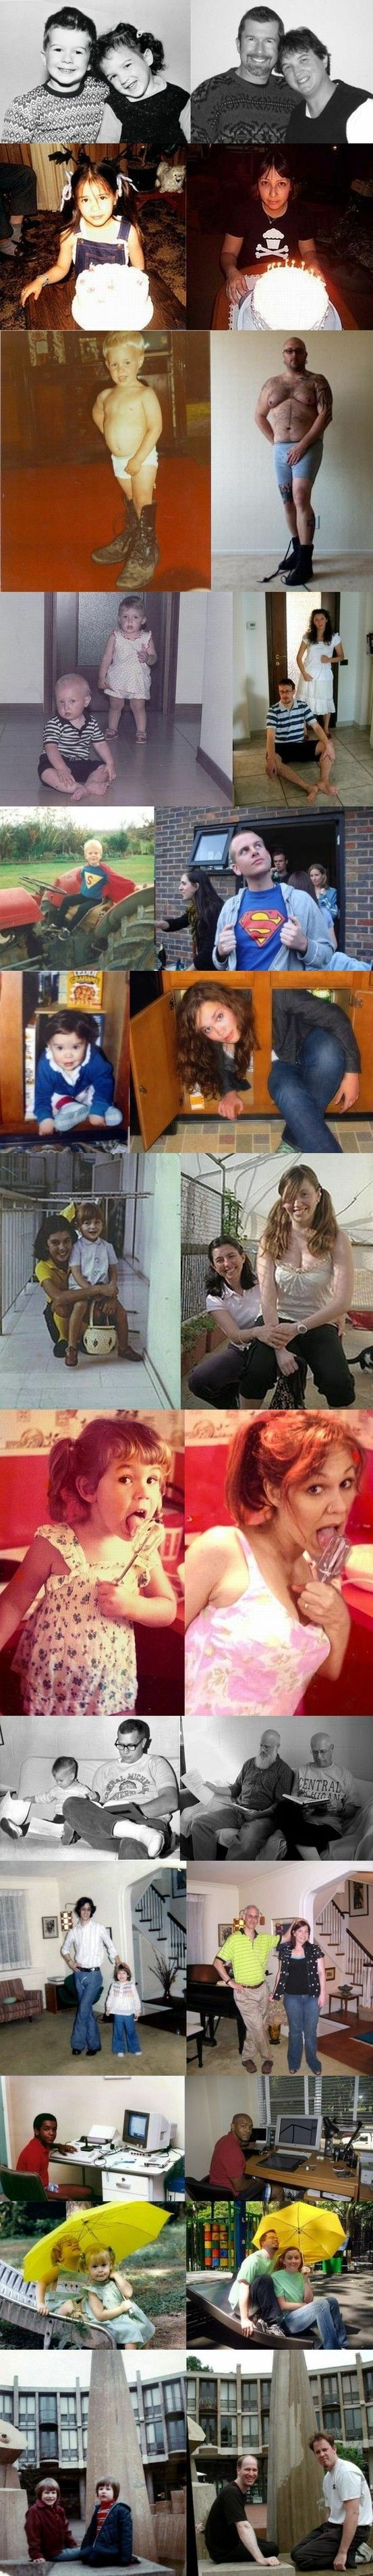 LOVE this idea of recreating childhood photos ... what a fun gift idea this would be!!! :)